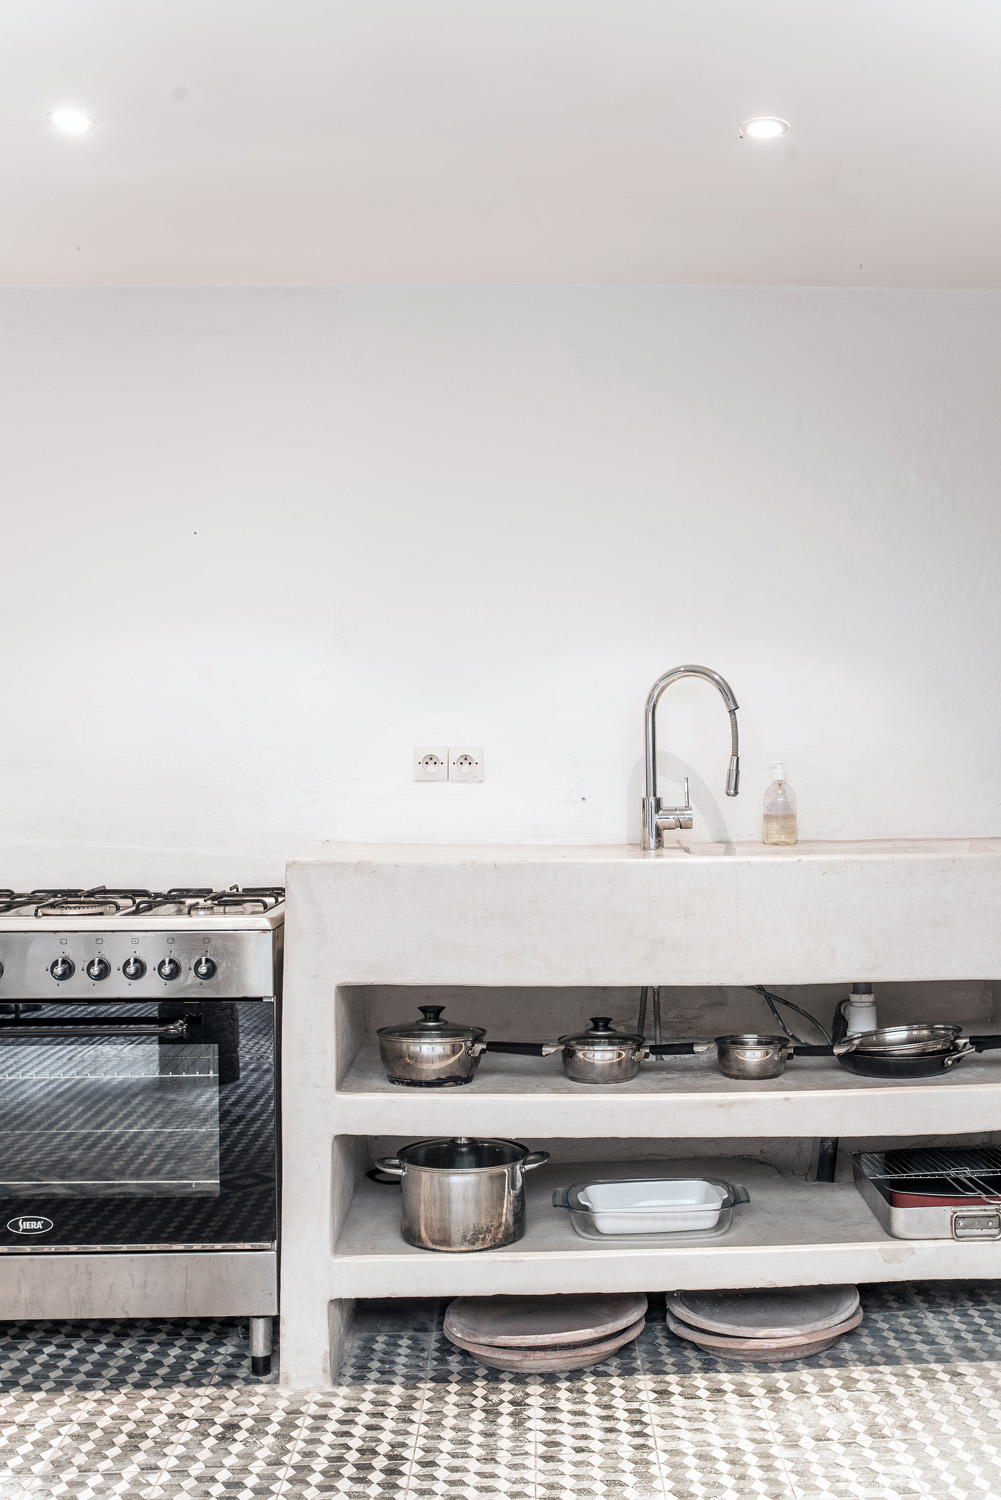 Kitchen with oven and sink